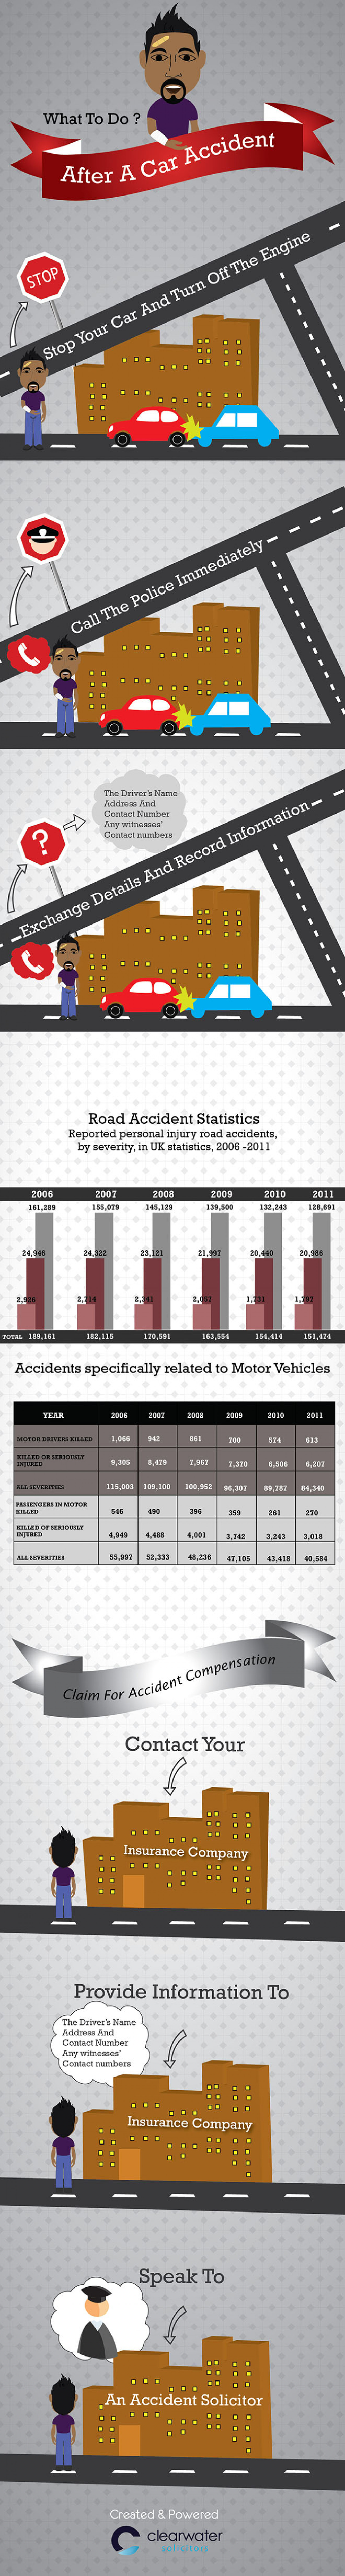 After a Car Accident Infographic